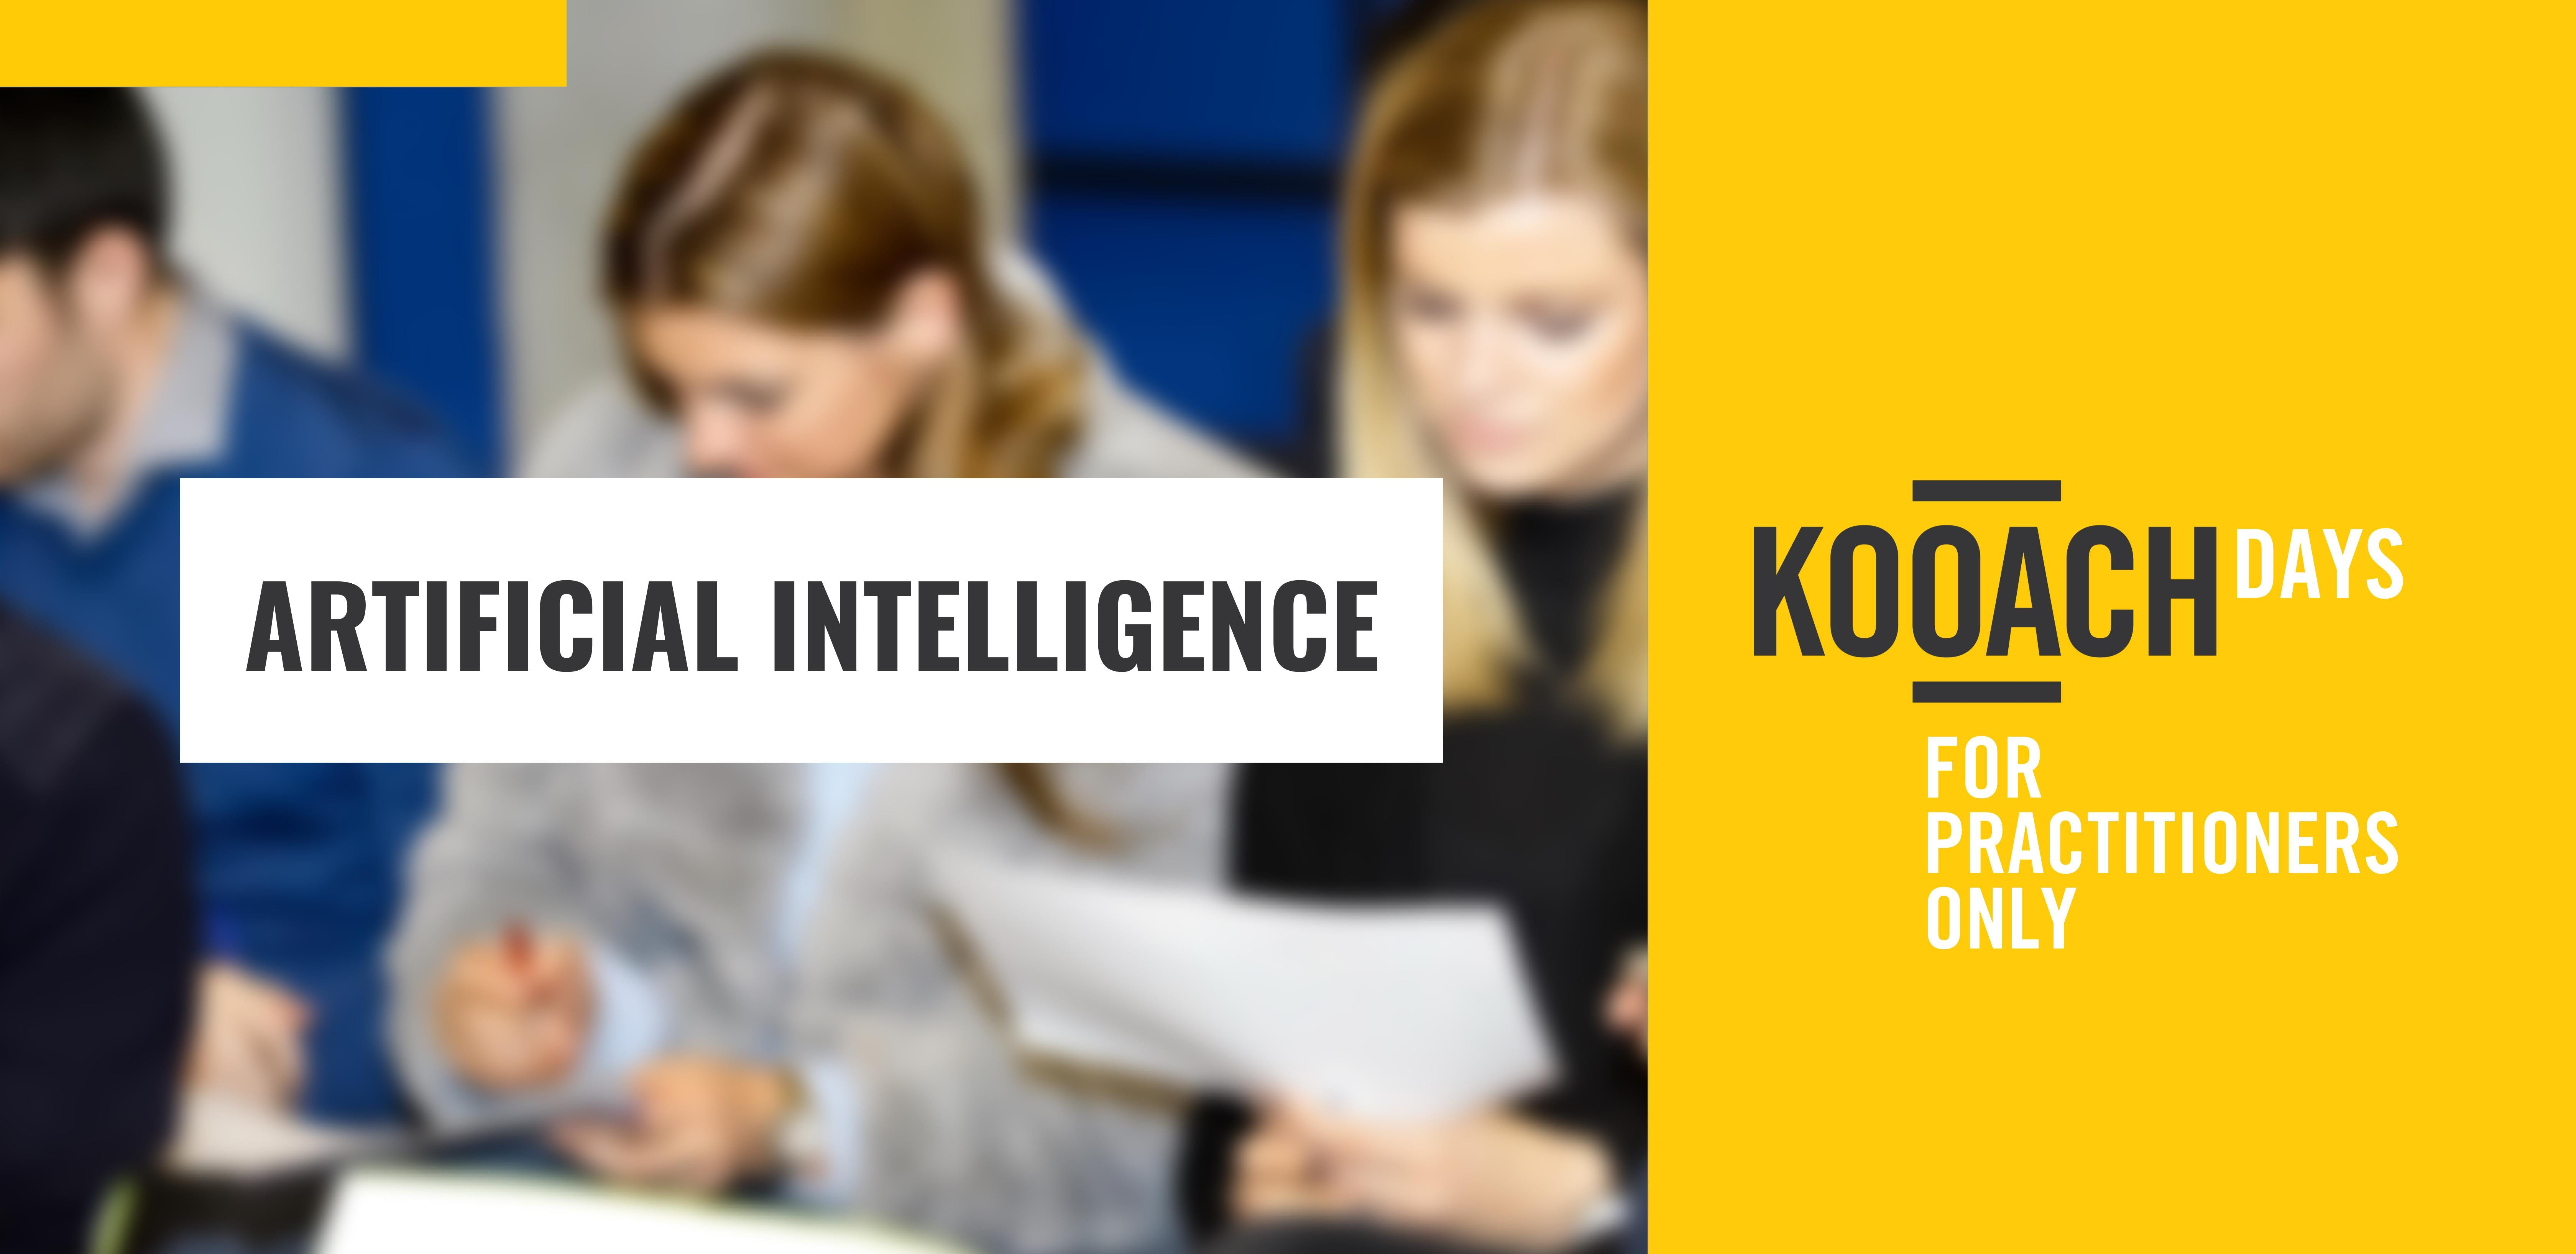 KOOACH Day: Artificial Intelligence Experts